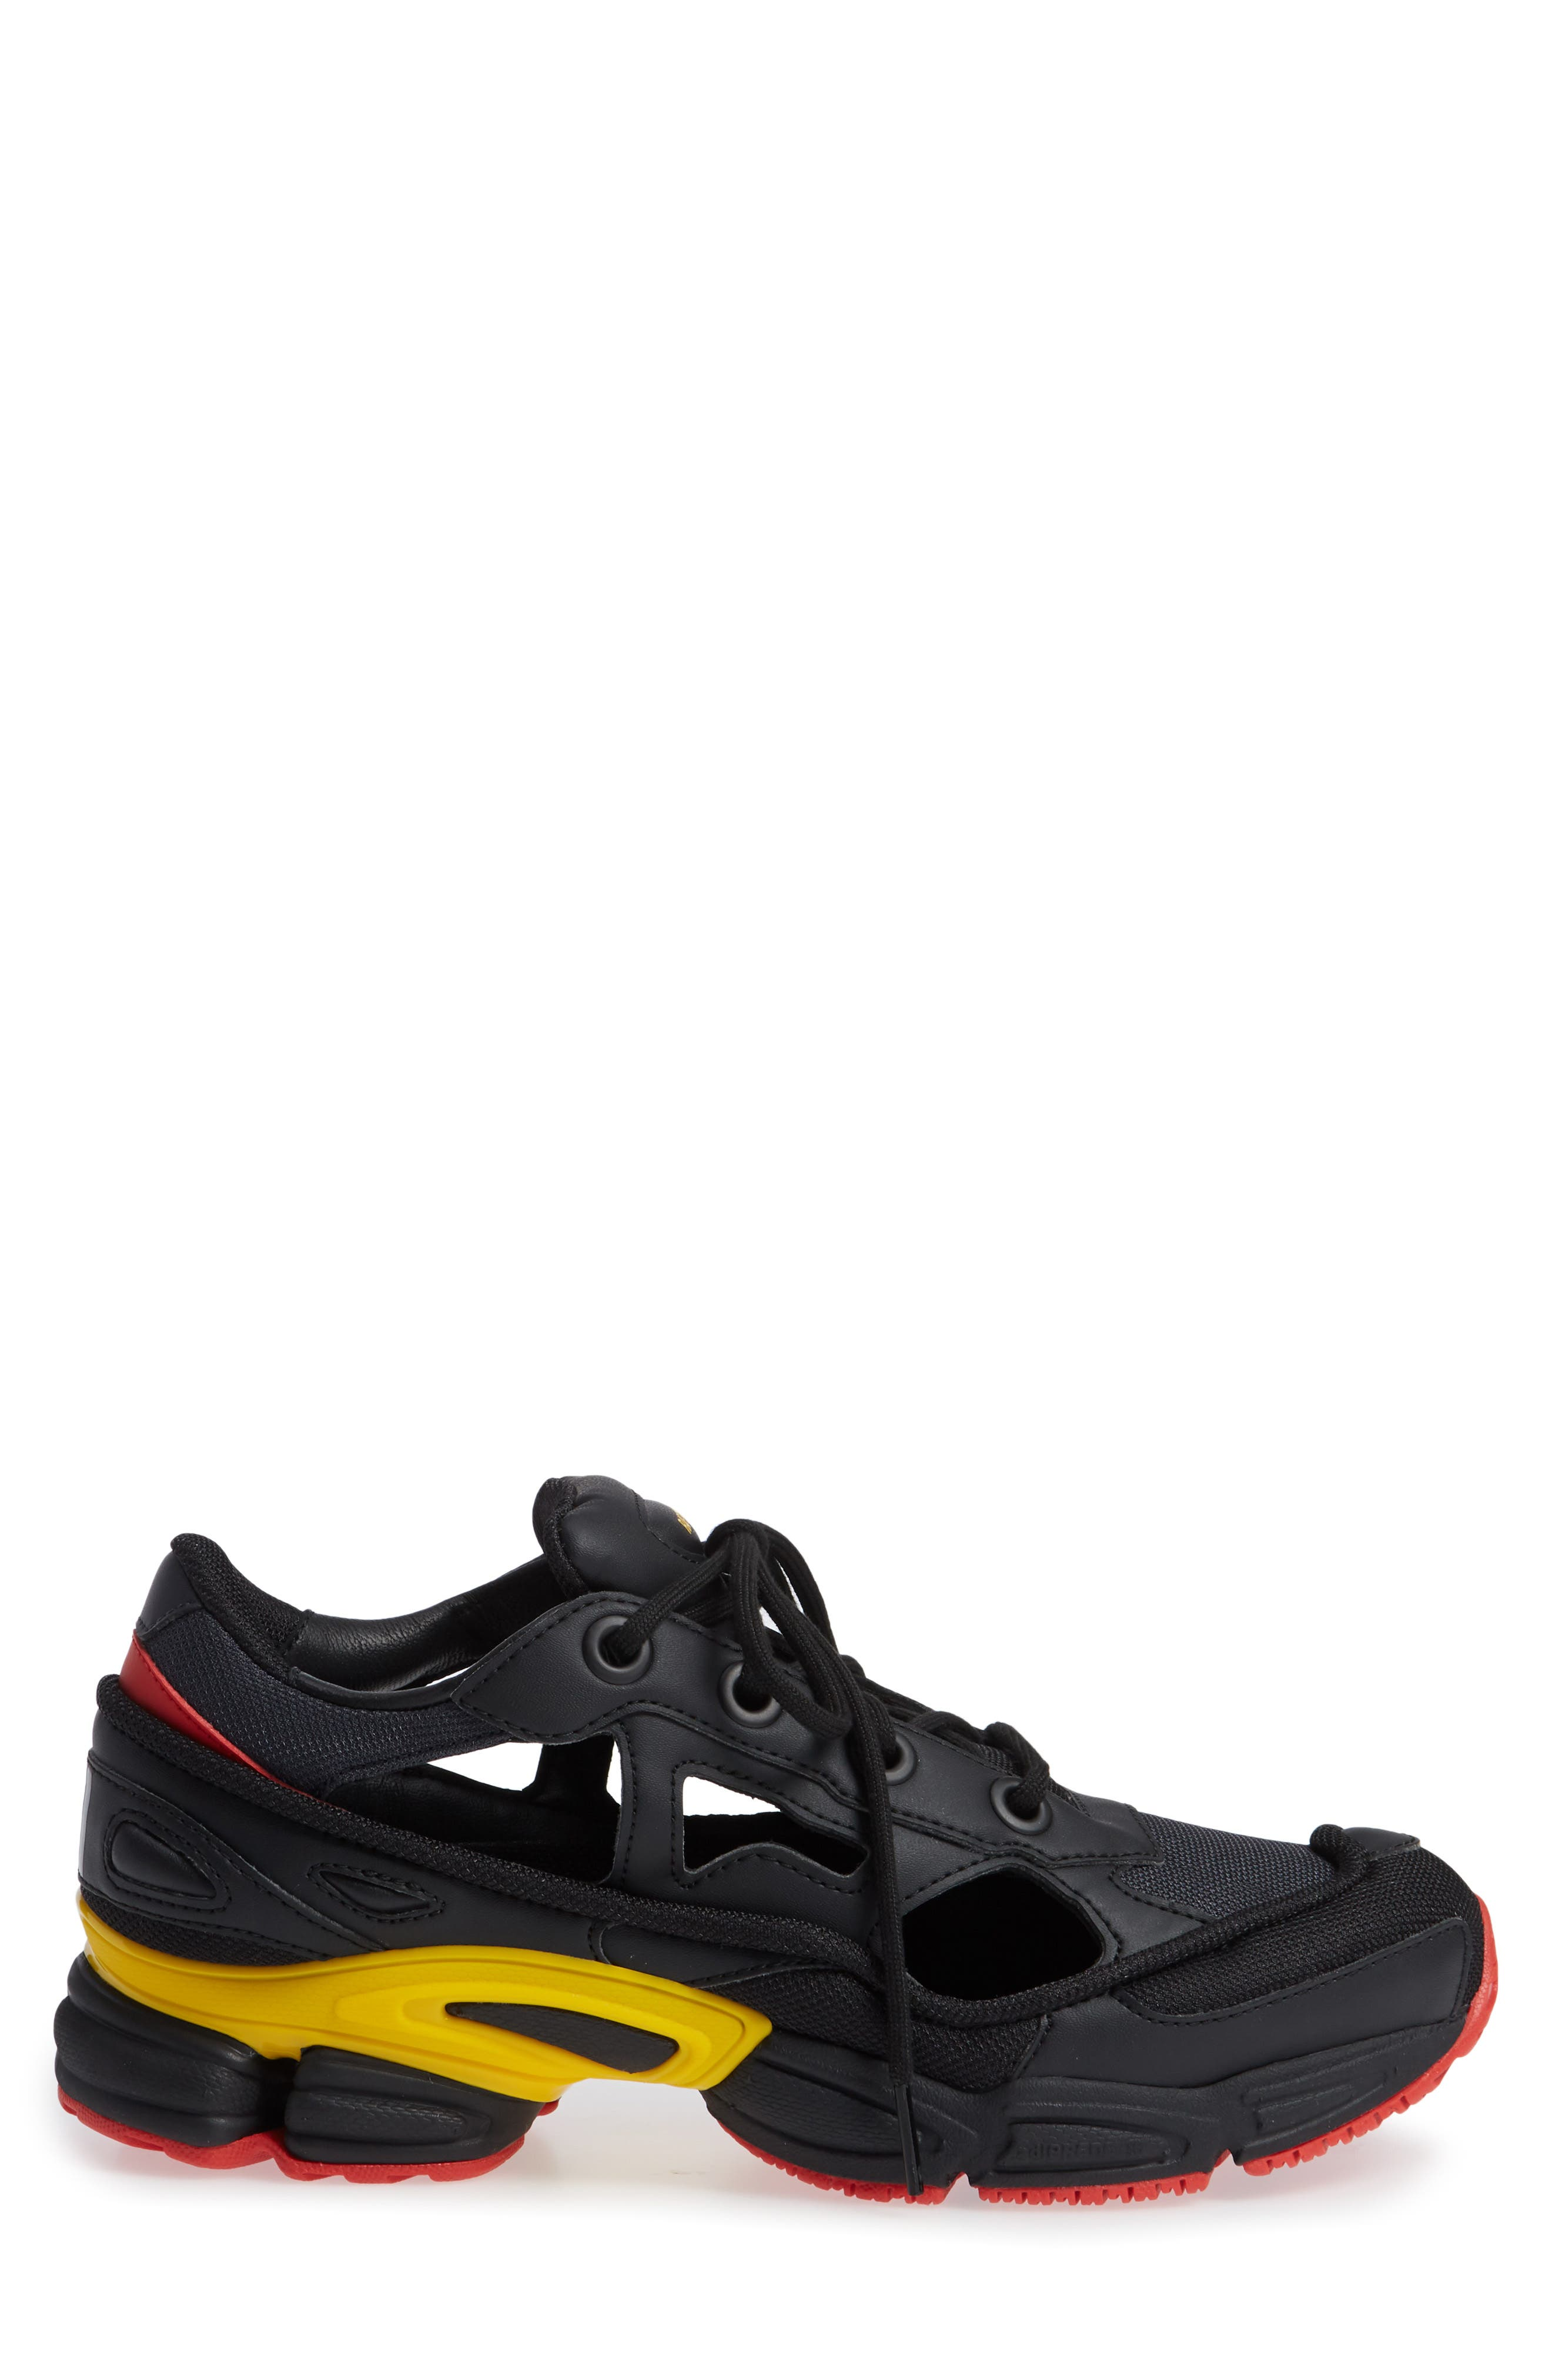 adidas by Raf Simons Replicant Ozweego Sneaker,                             Alternate thumbnail 3, color,                             001